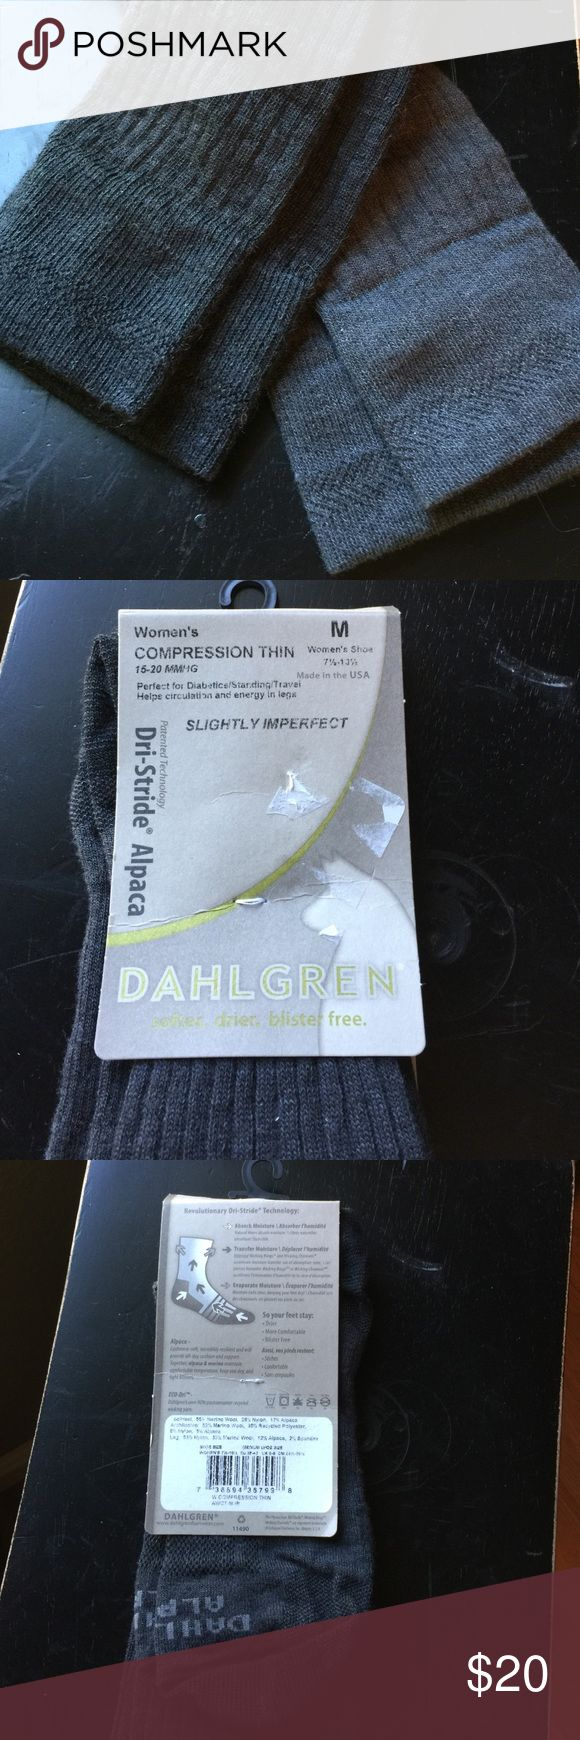 ideas about circulation socks stendhal dahlgren socks two pair love but bought these by accident intended for diabetic standing and